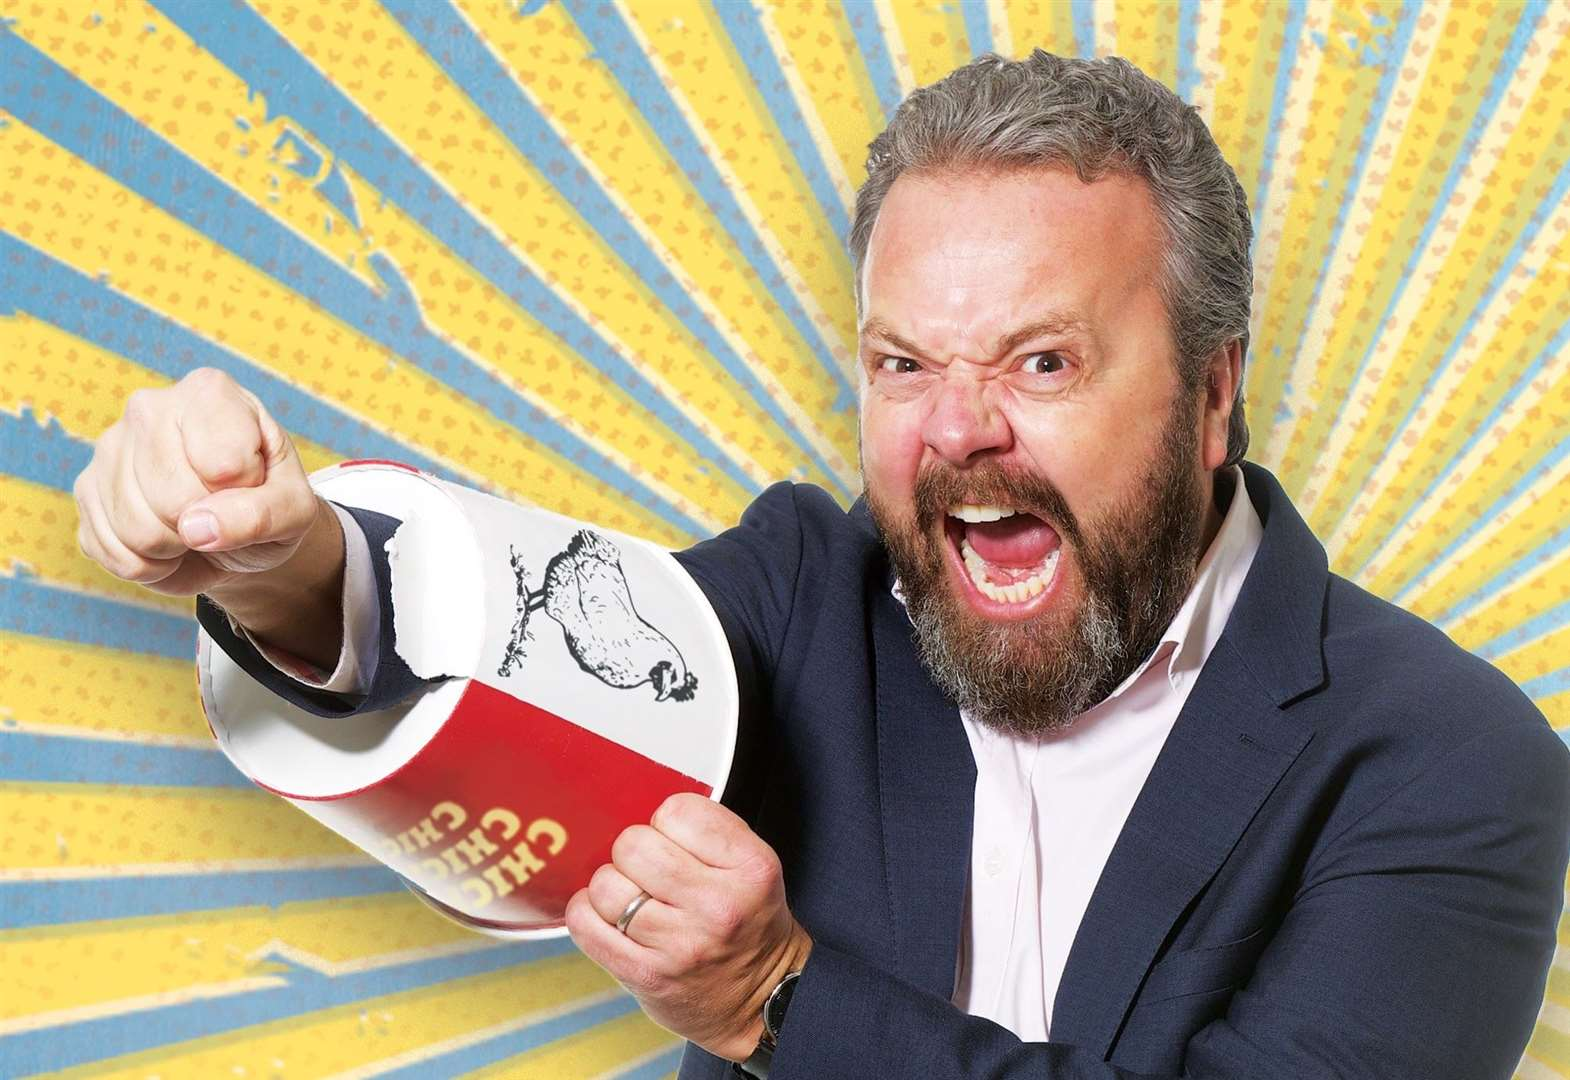 TV comedian Hal Cruttenden to play Stortford's Laughing Bishops Comedy Club